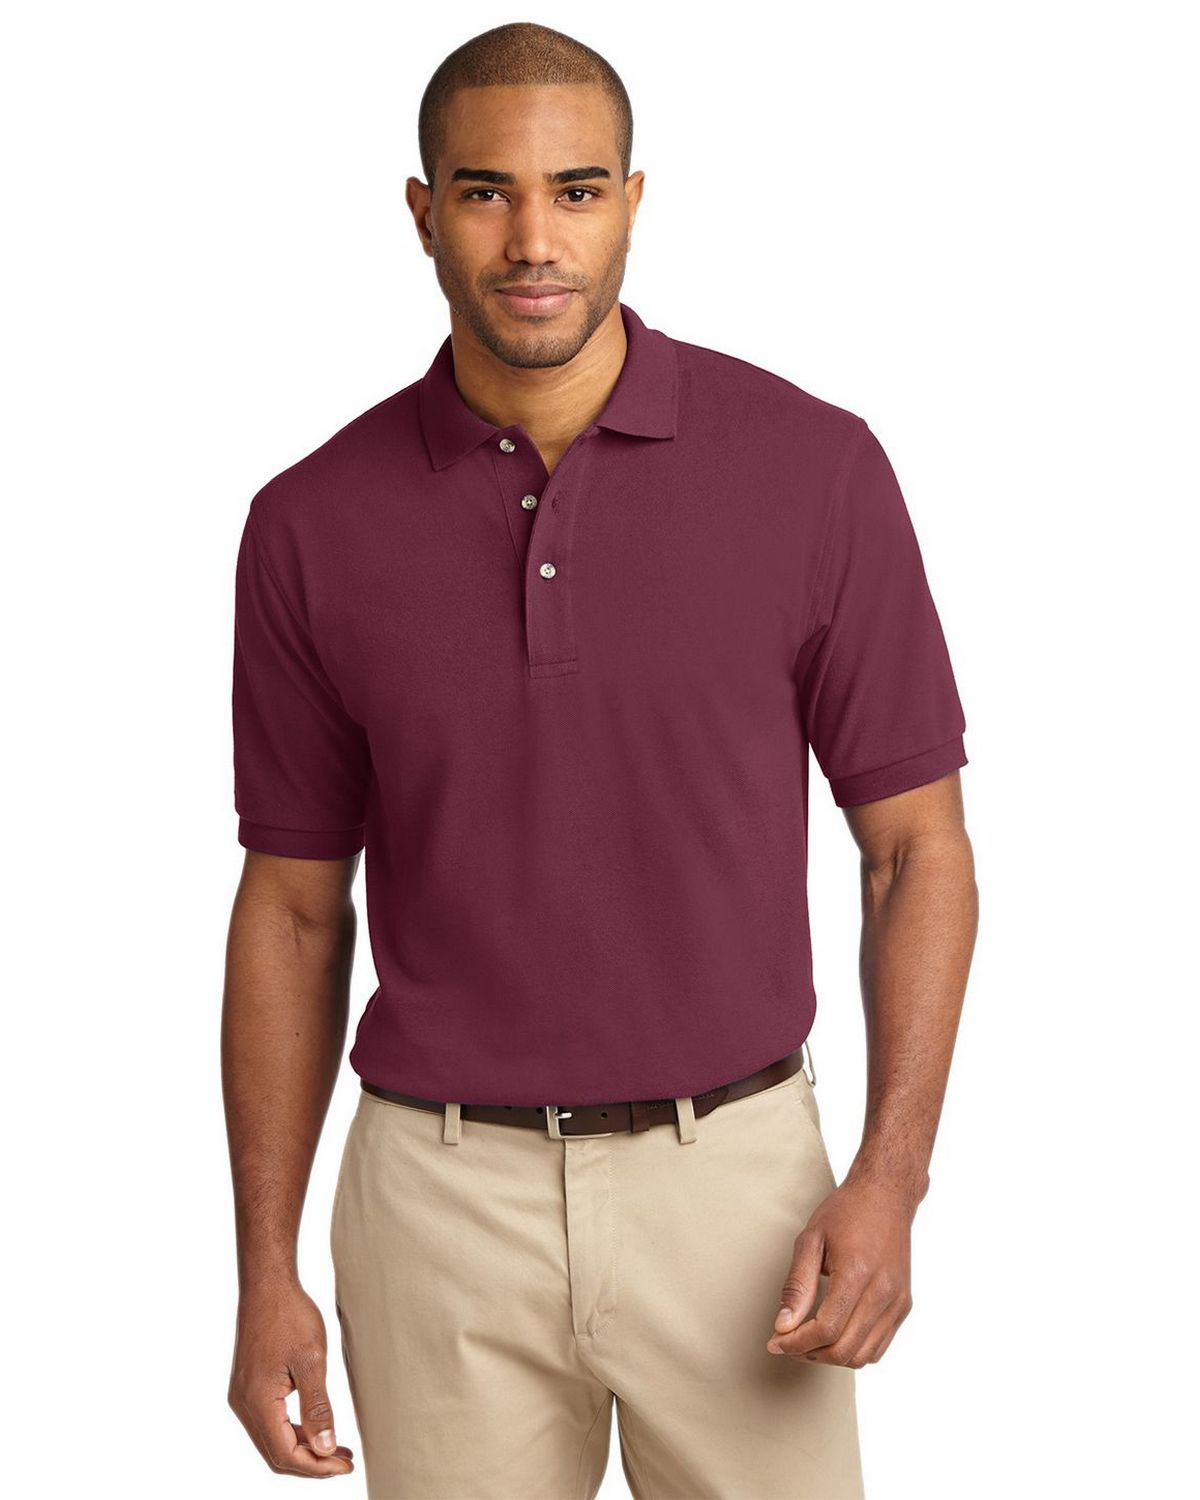 Port Authority K420 Pique Knit Polo - Burgundy - XS